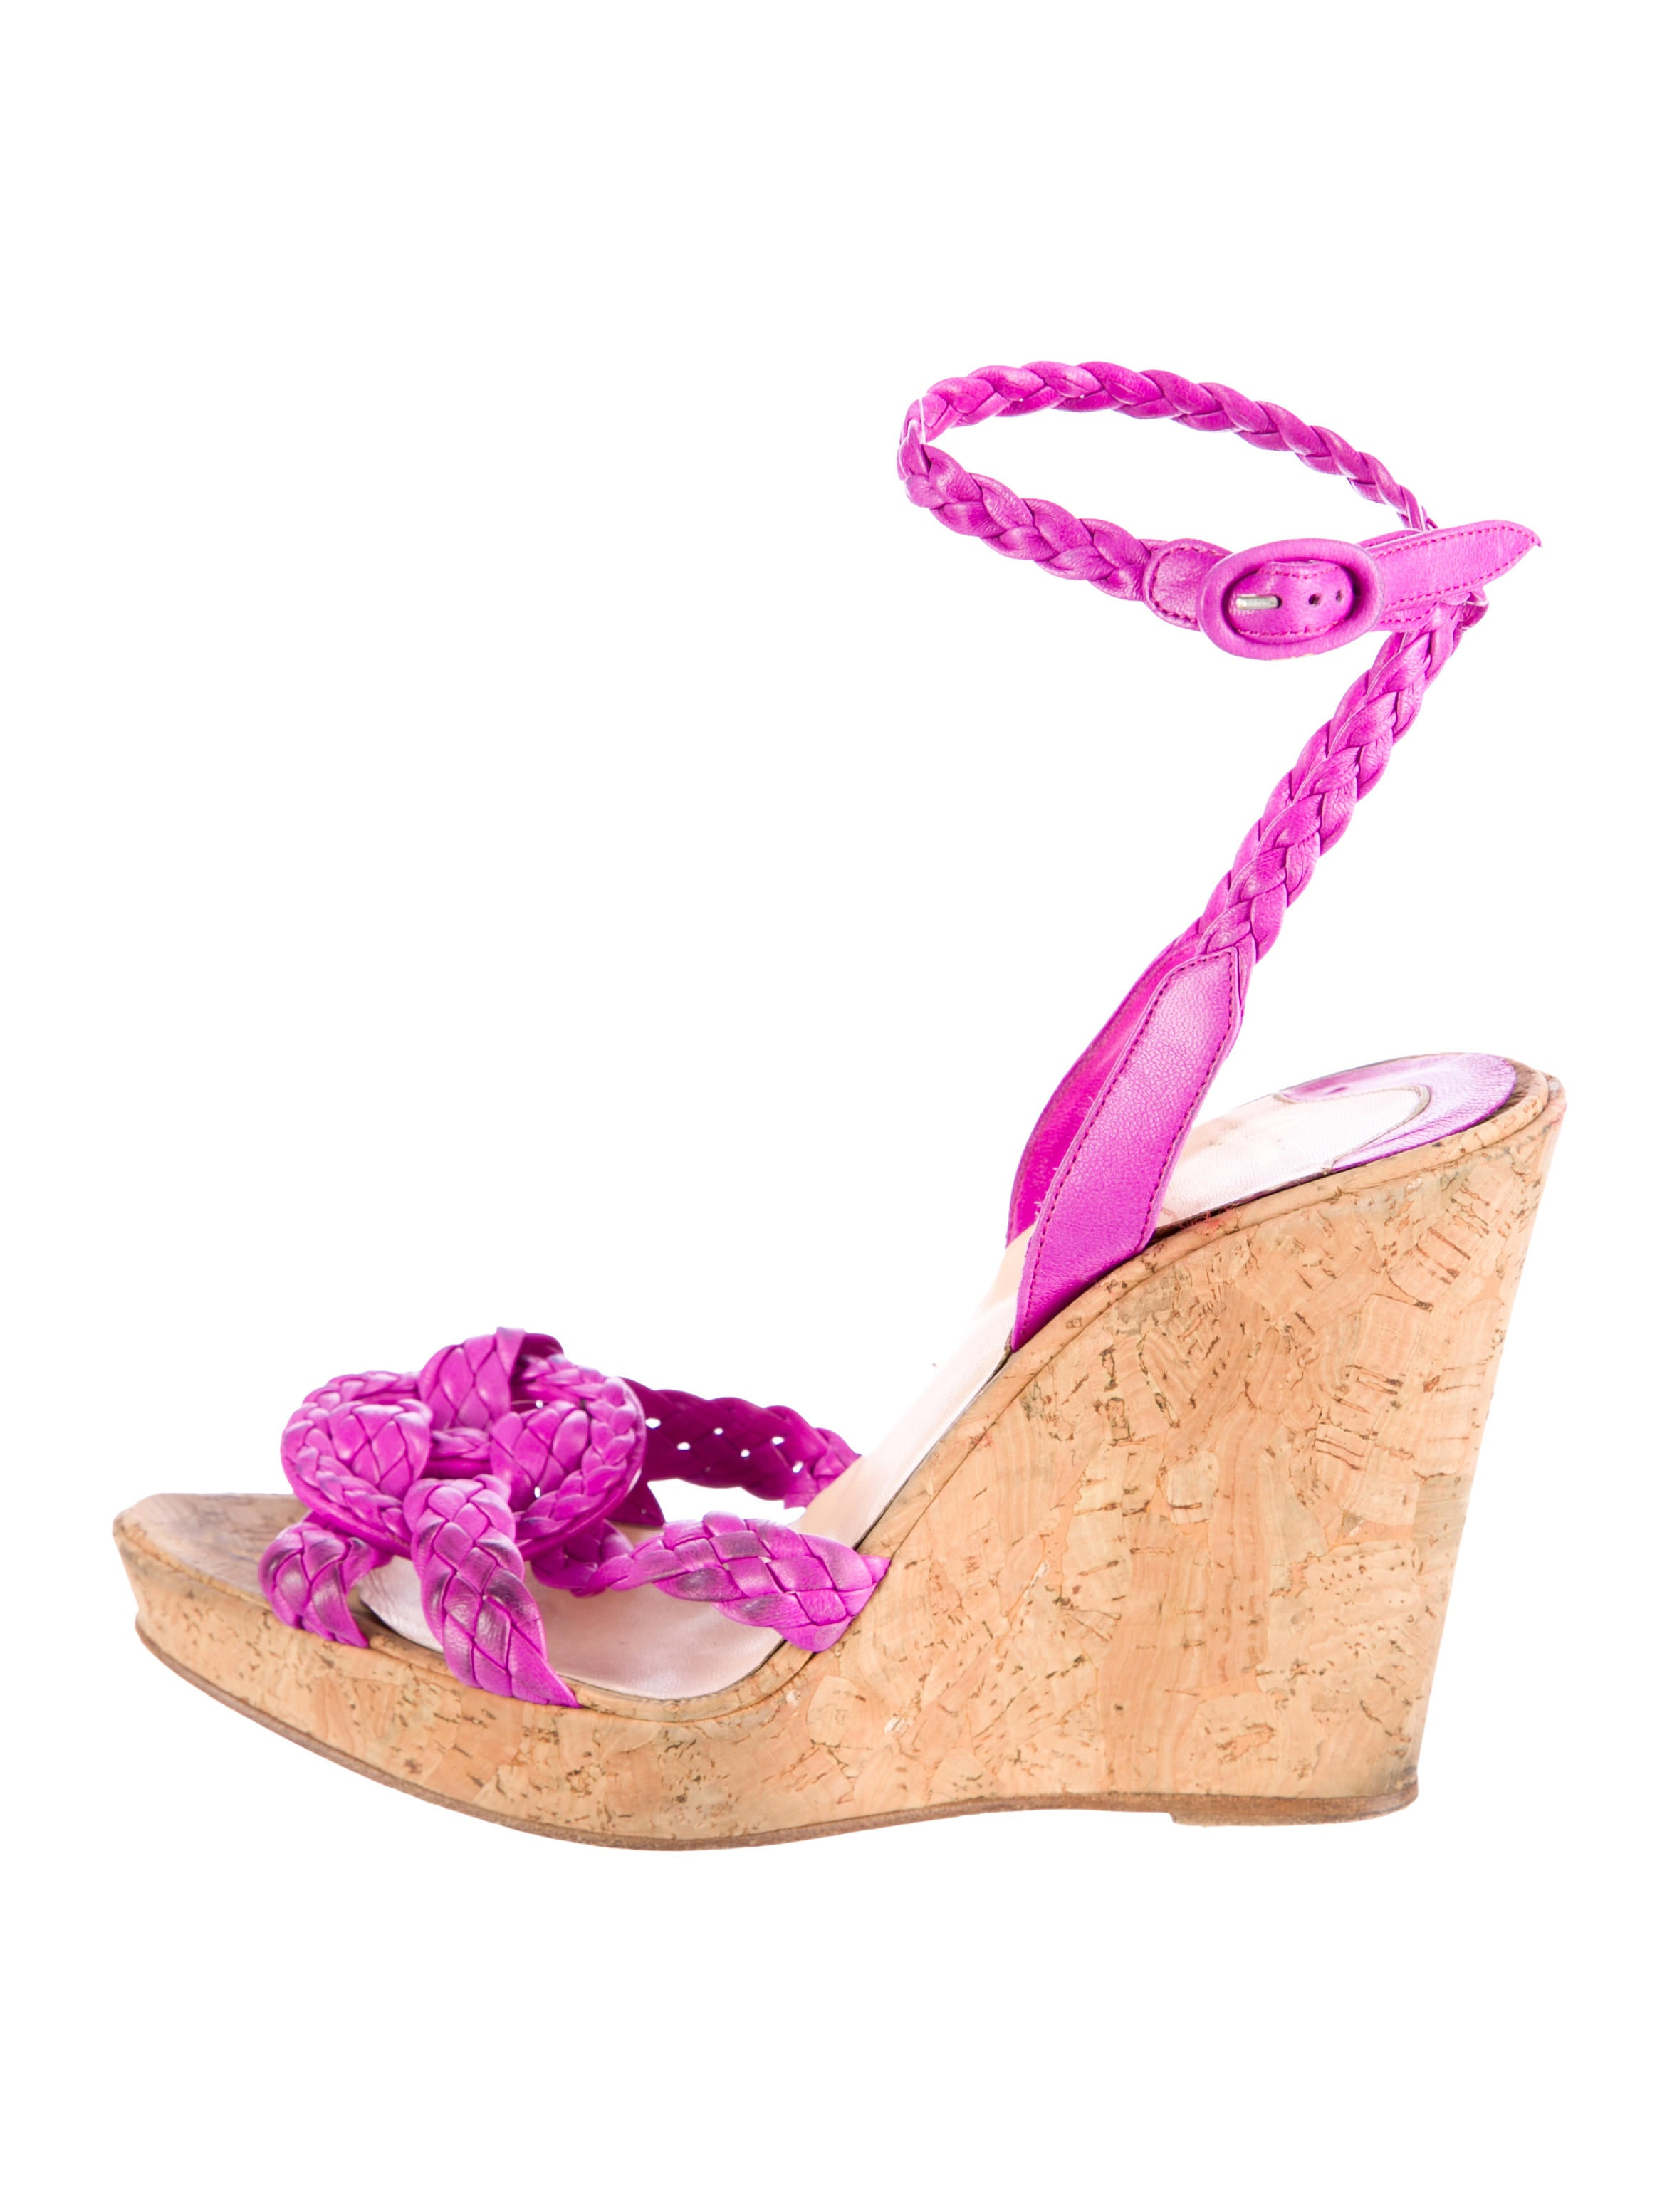 replica christian louboutin shoes - christian louboutin wedges Purple braided leather crossover straps ...